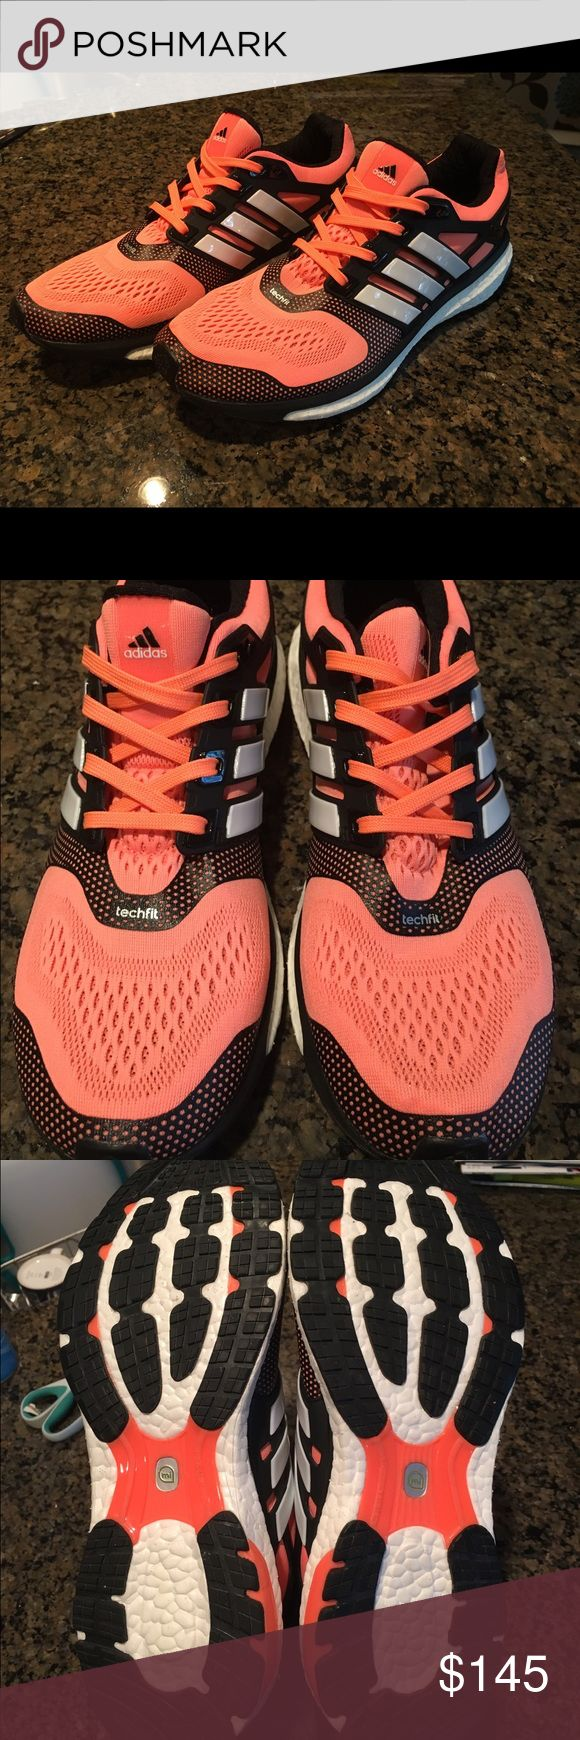 NWOB Adidas Energy Boost ESM Adidas Energy Boost ESM for Adidas running. **BRAND NEW CONDITION**NO LONGER SOLD IN STORES OR ONLINE** Orange/peachy color. Worn once to try on, little too big for me. Women's 10 but will fit a women's 9-9.5. No stains or any show of wear on treads or shoes. Made with Techfit and Boost technology to give you comfort and an adaptive run. Literally so comfy. Purchased at official Adidas event in Dec. 2016. NWOB, comes w/o box as that's how it was purchased. Adidas…